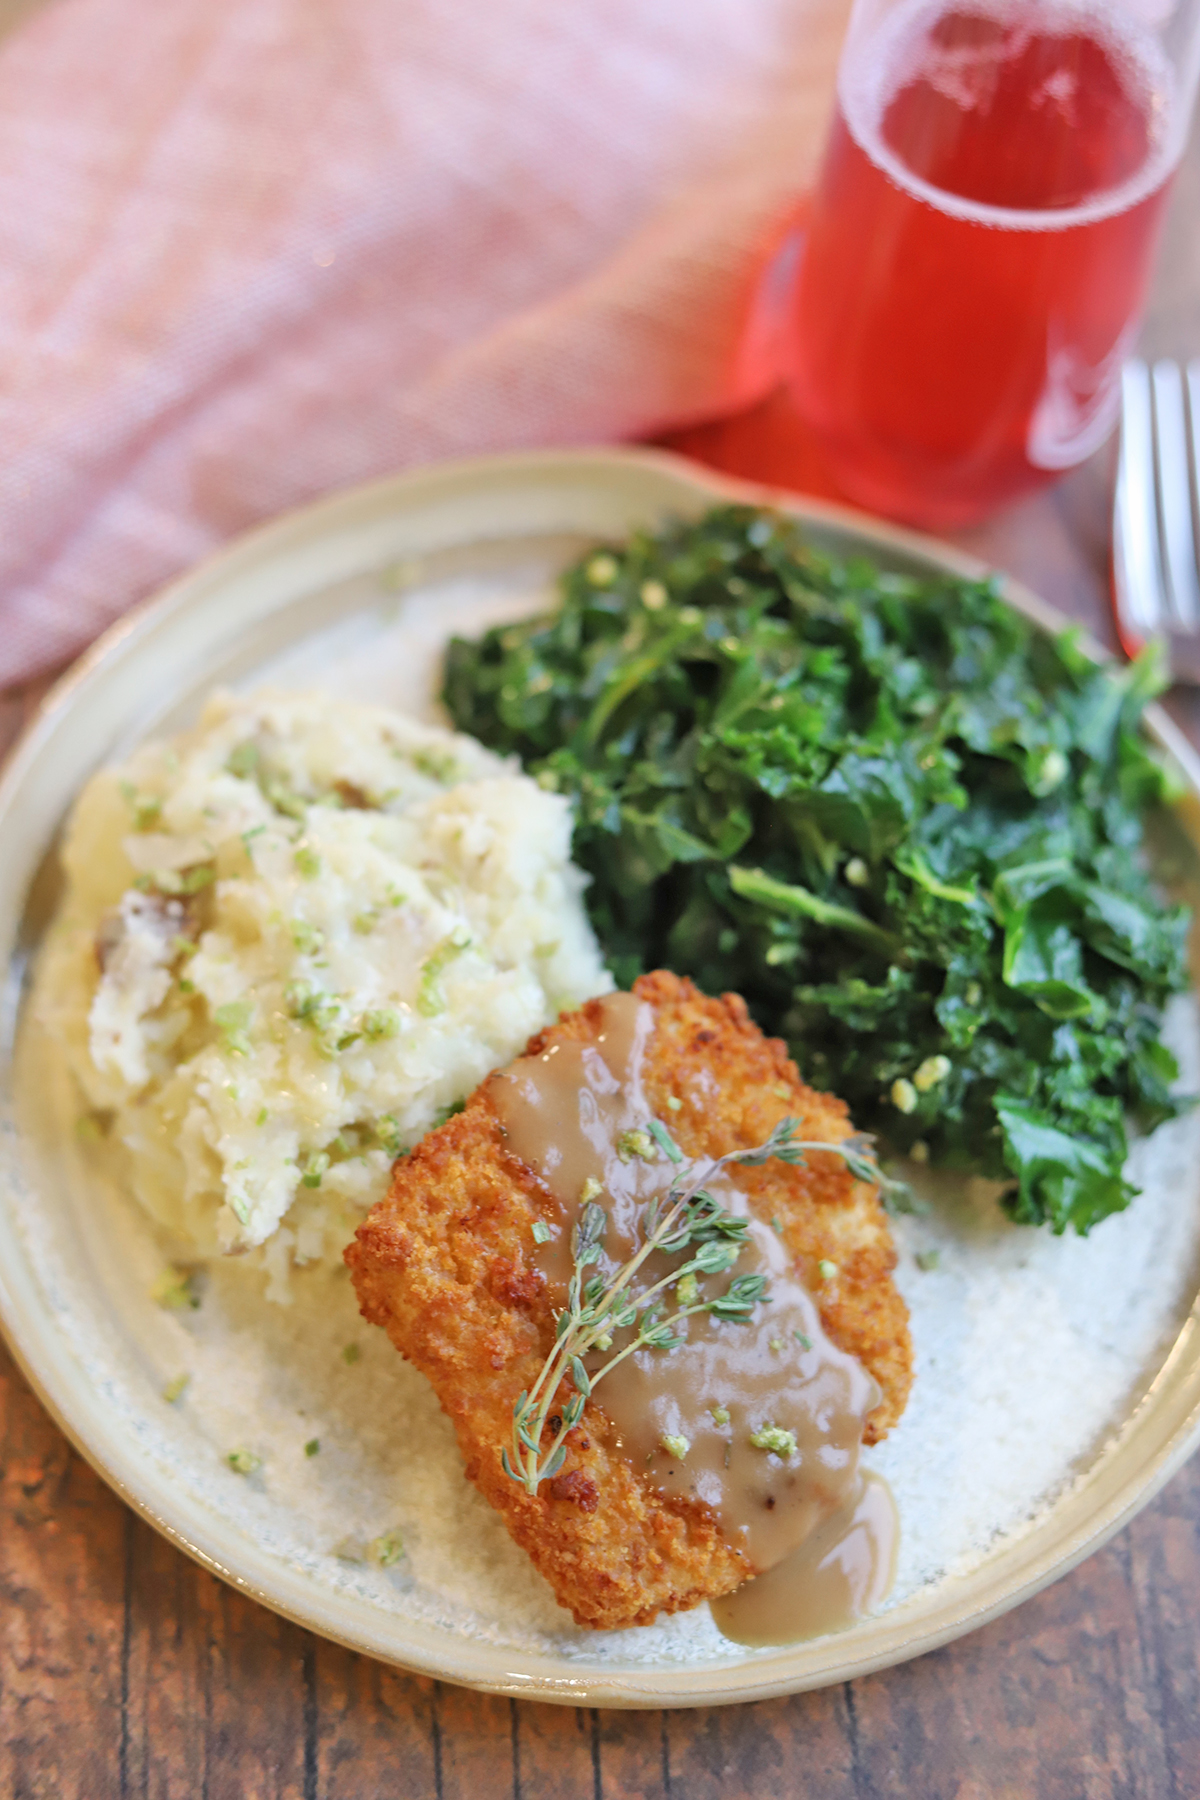 Mashed potatoes on plate with greens and Gardein turk'y cutlets.